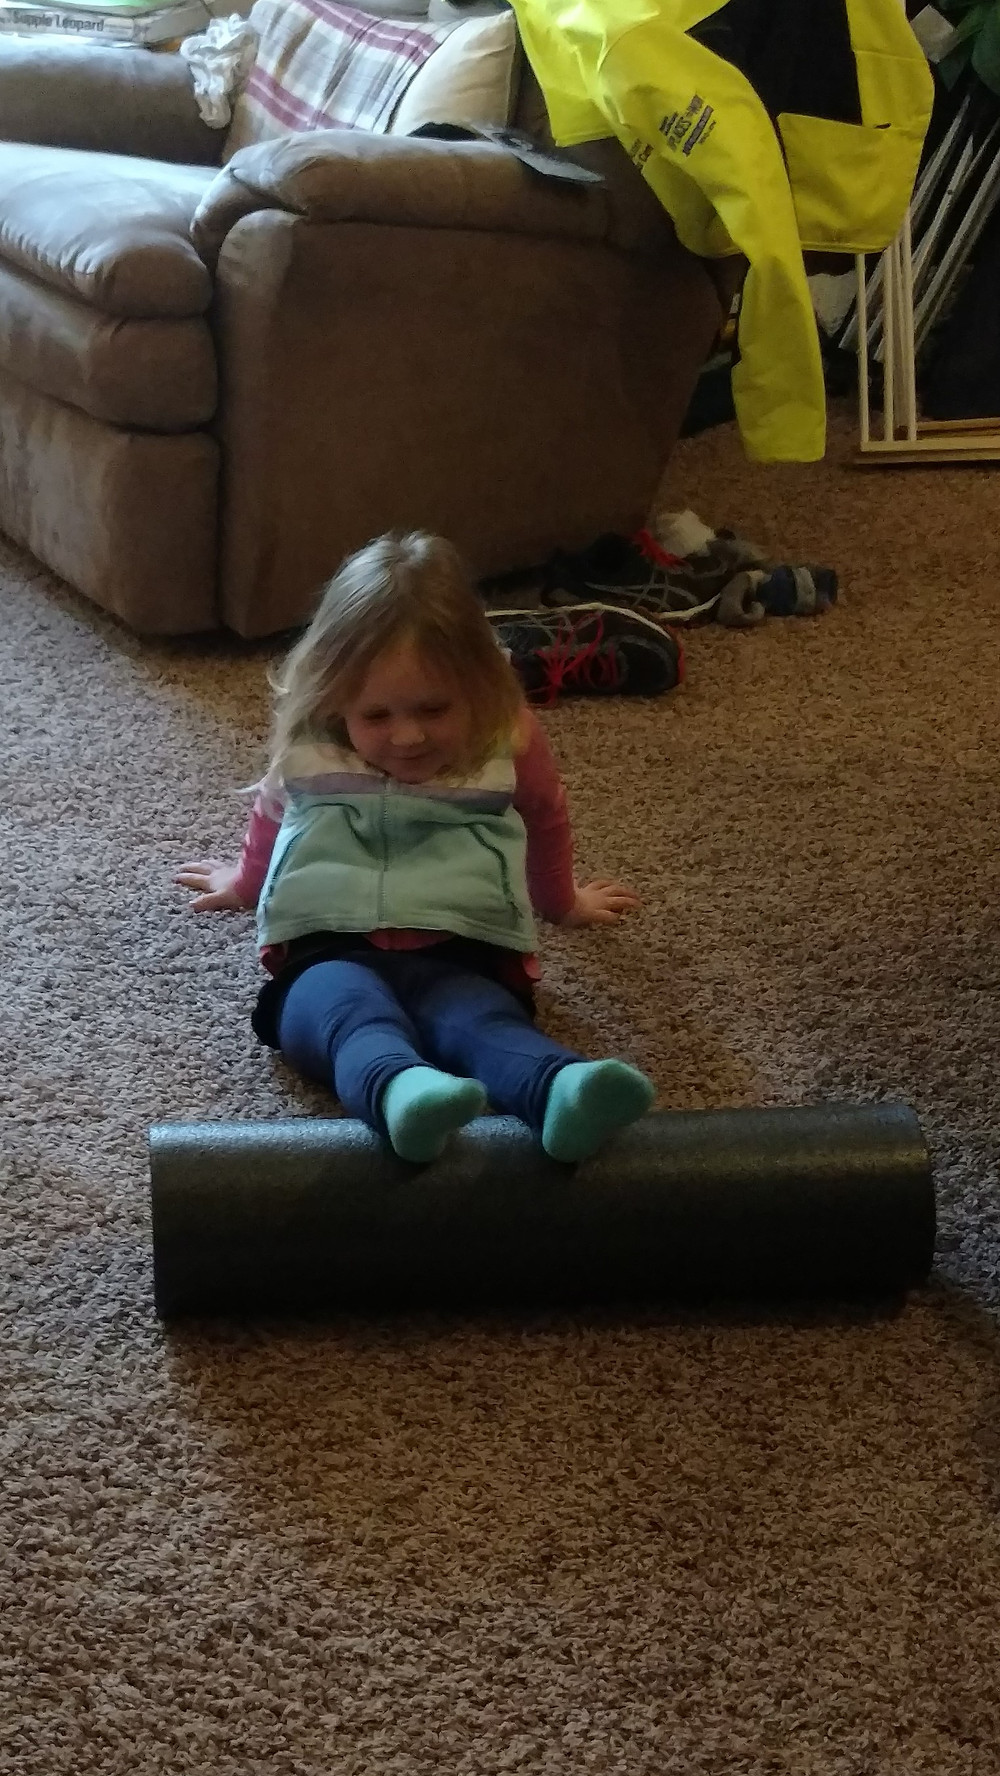 Lucy foam rolling at age 3